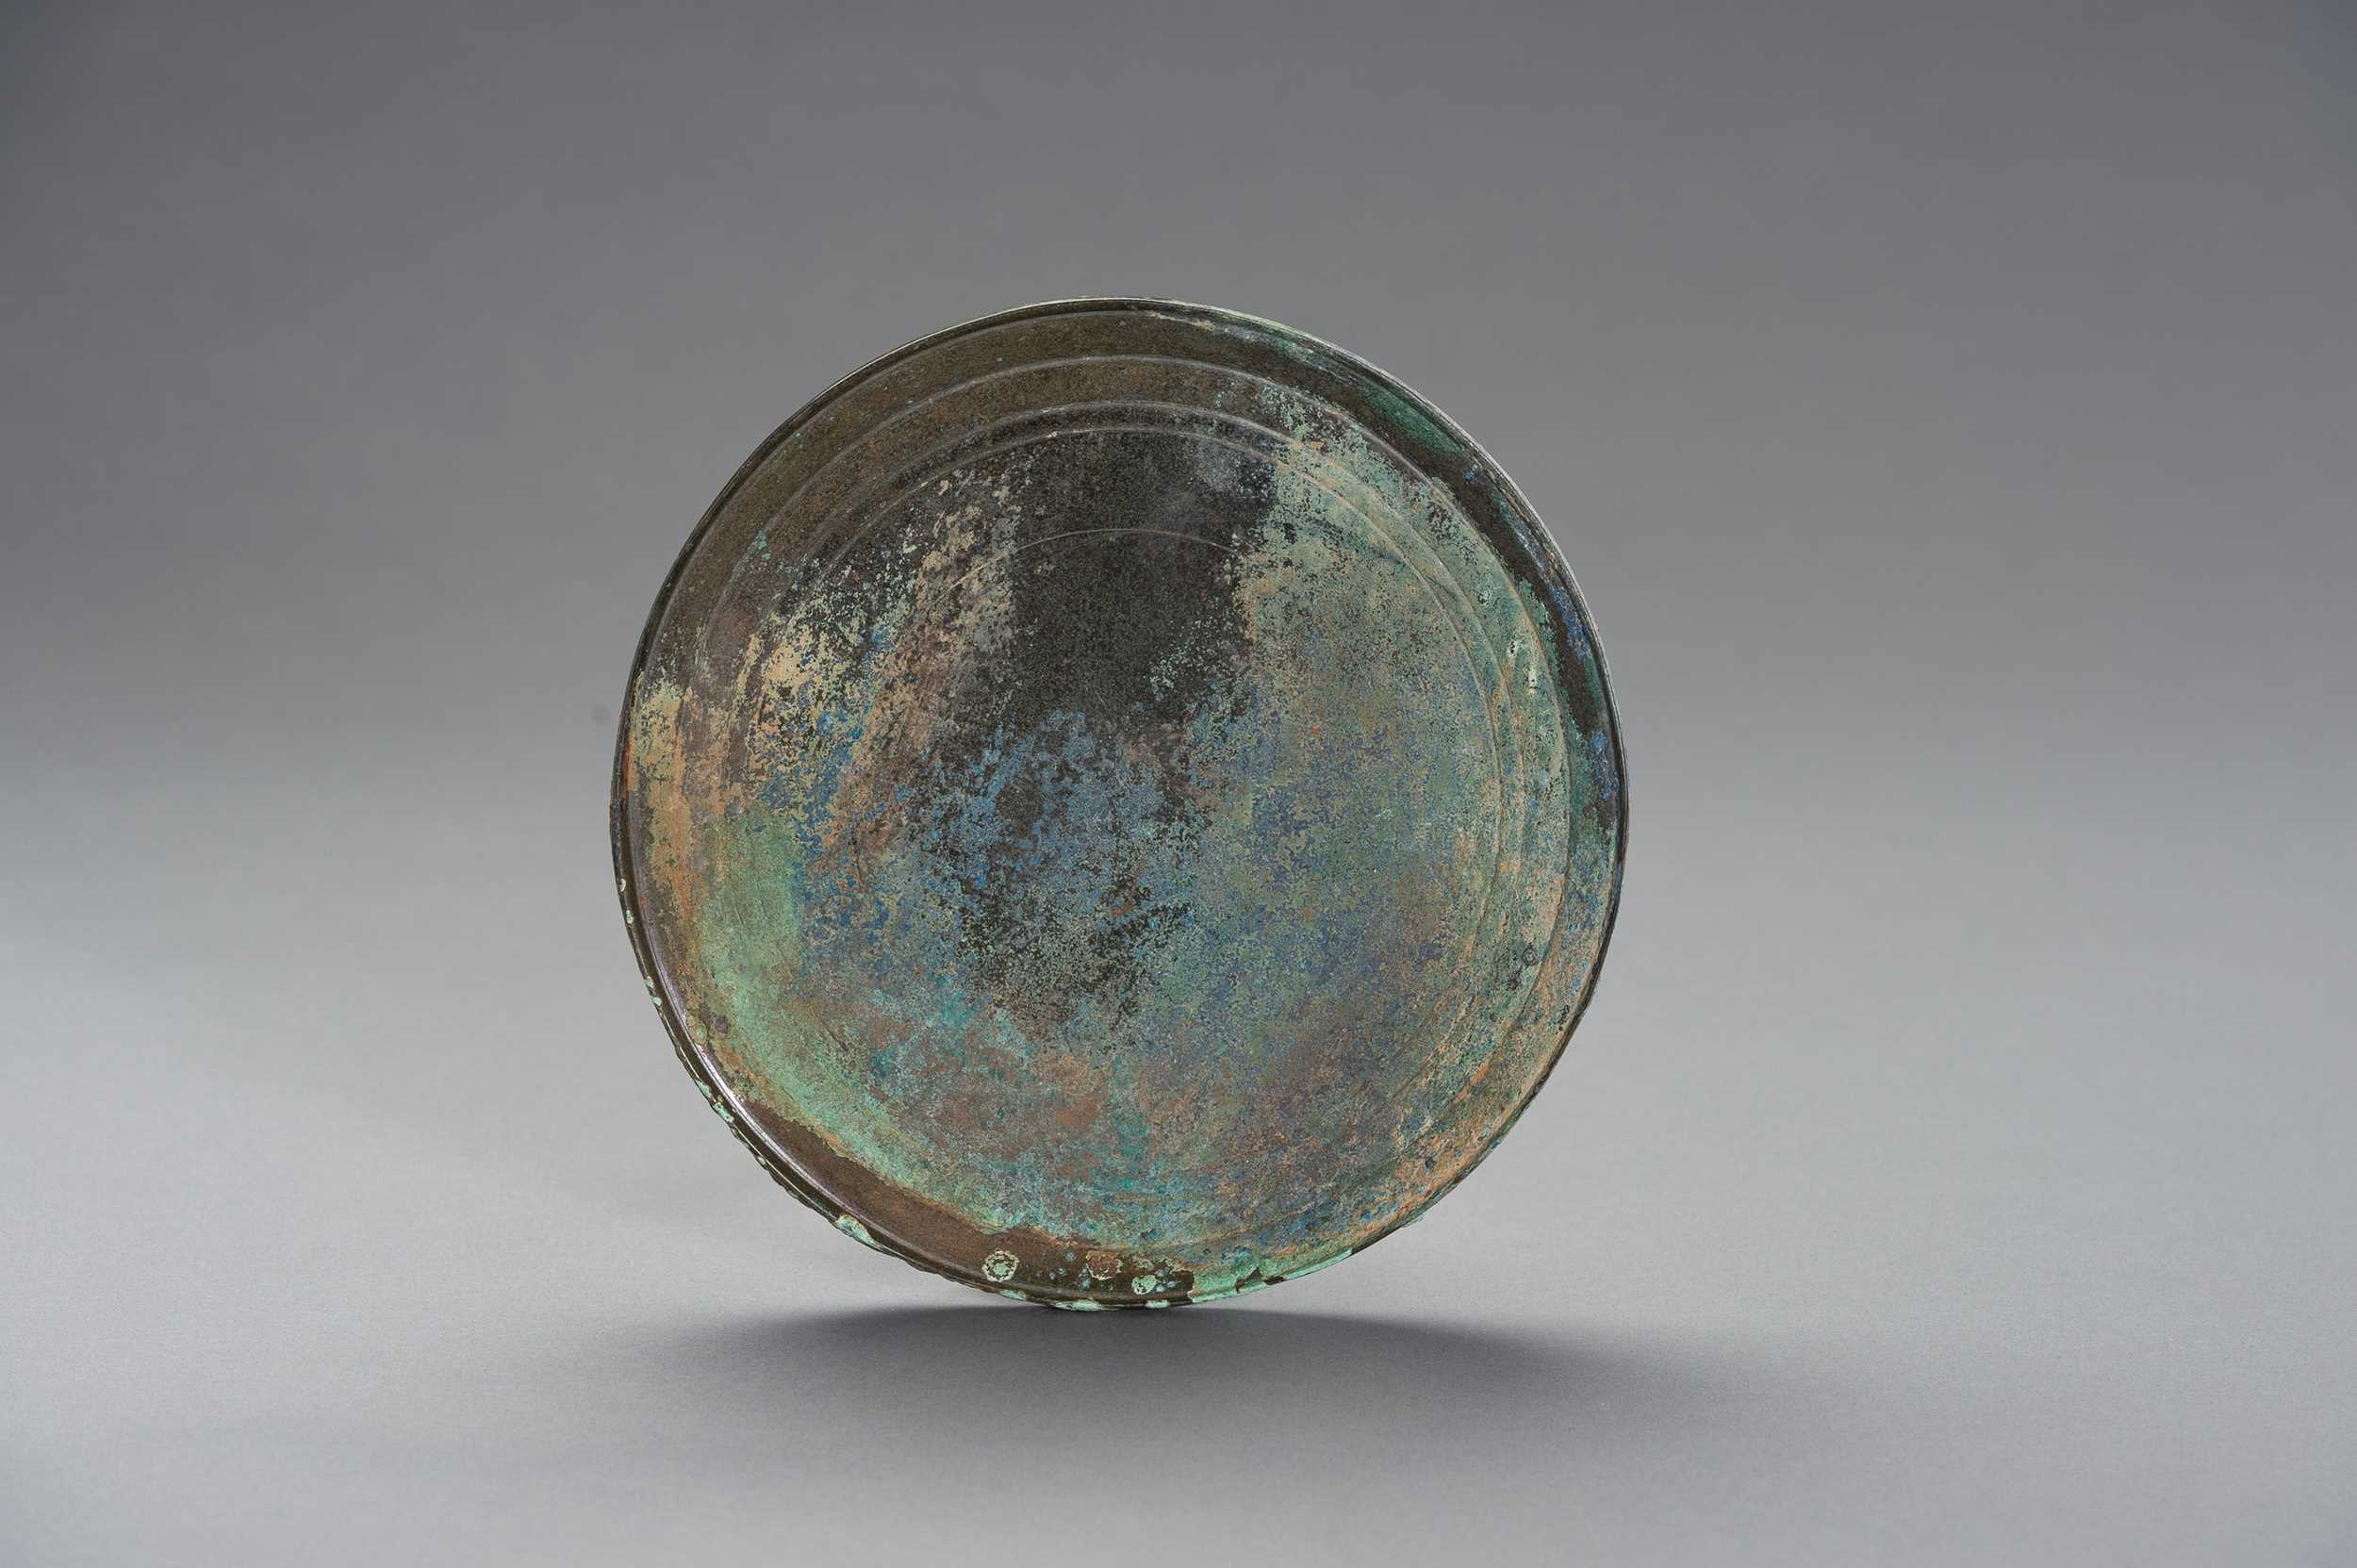 Asian Art Discoveries - China and Southeast Asia